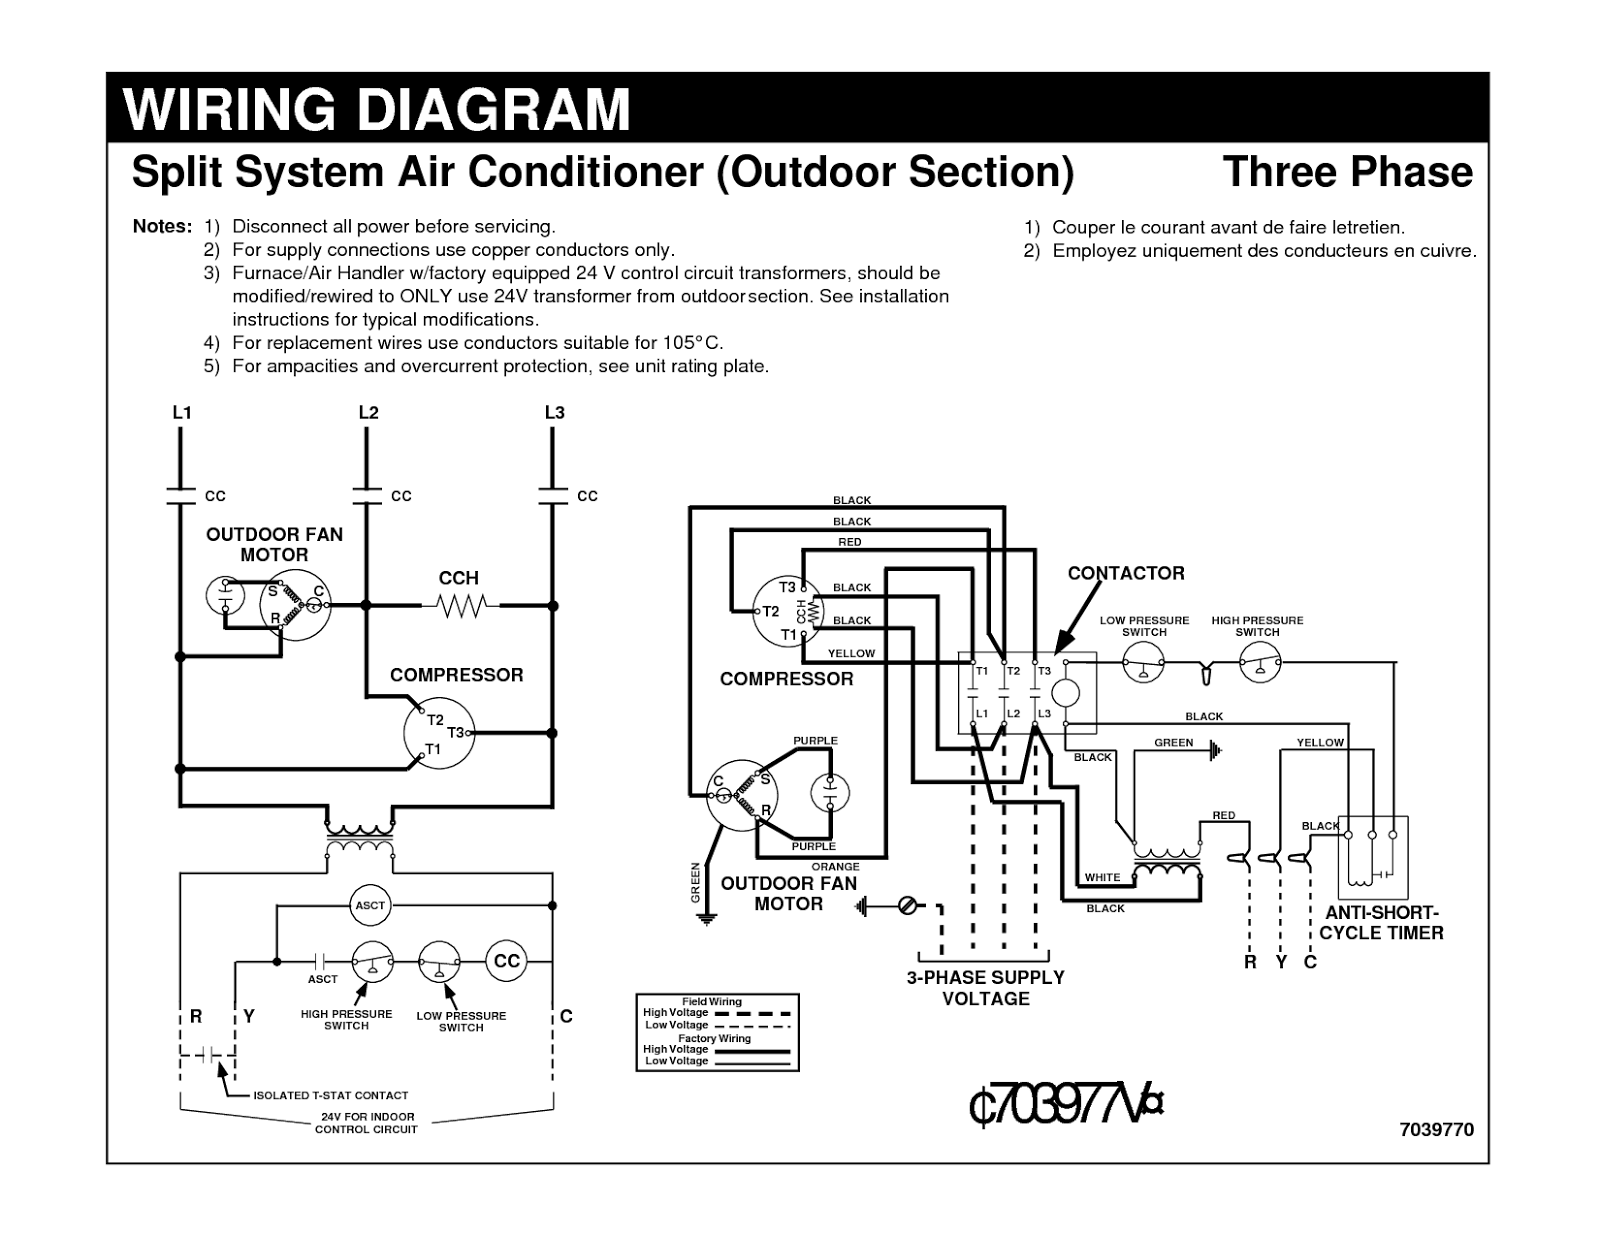 wiring diagram central air conditioning information how to wire a rh 6 derf bolonka zwetna von der laisbach de goodman central air conditioner wiring diagram gibson central air conditioner wiring diagram